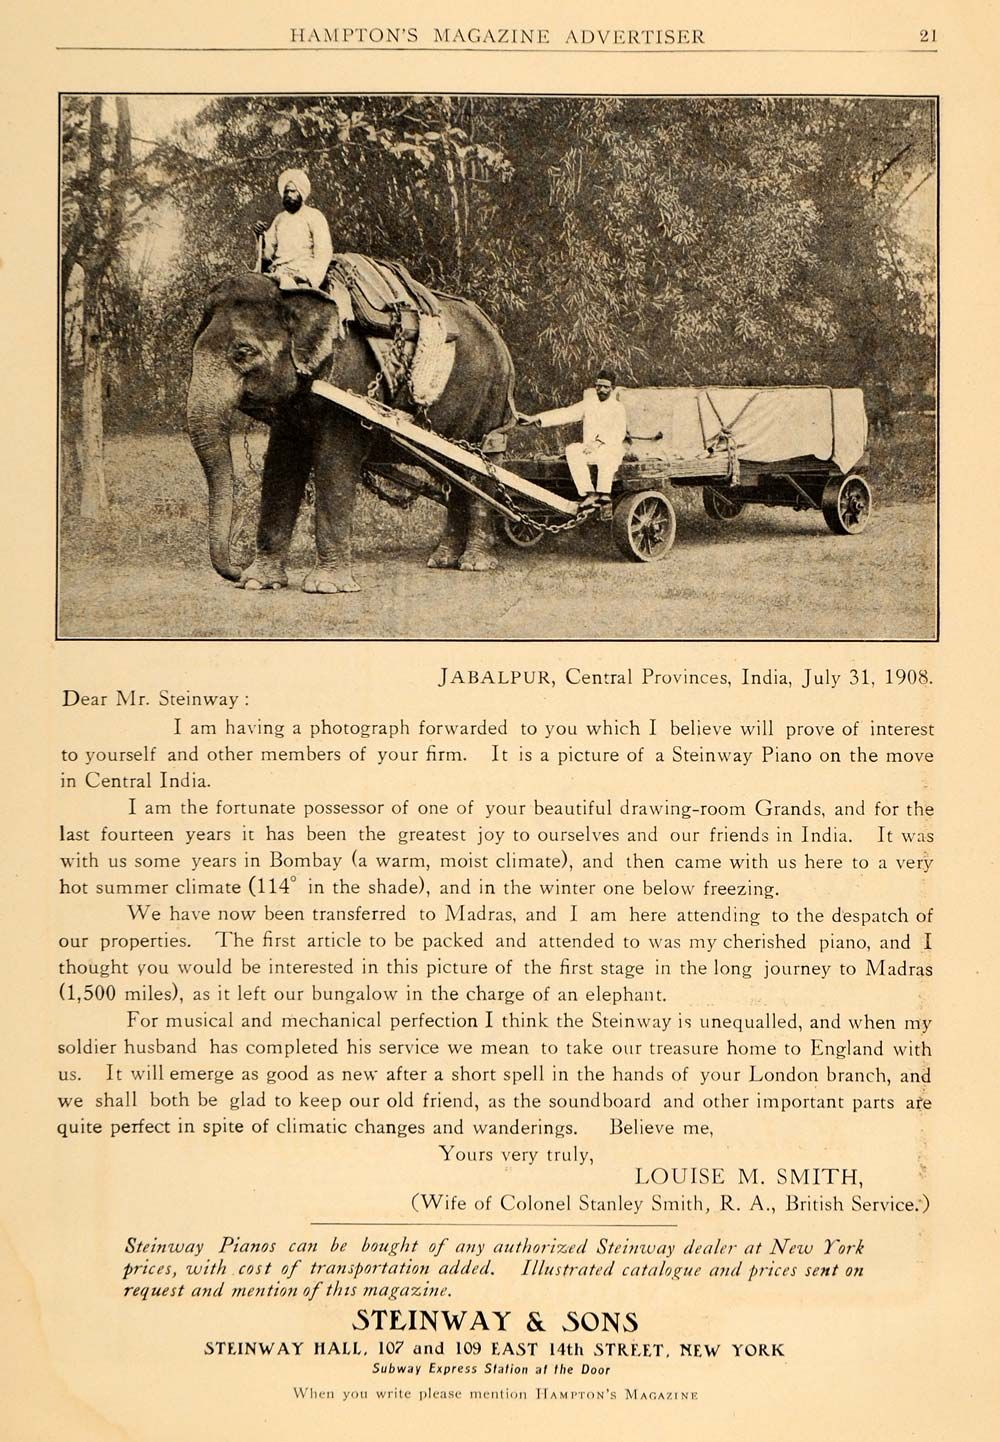 1909 Ad - Steinway & Sons - Letter from Louise M. Smith, Jabalpur ...